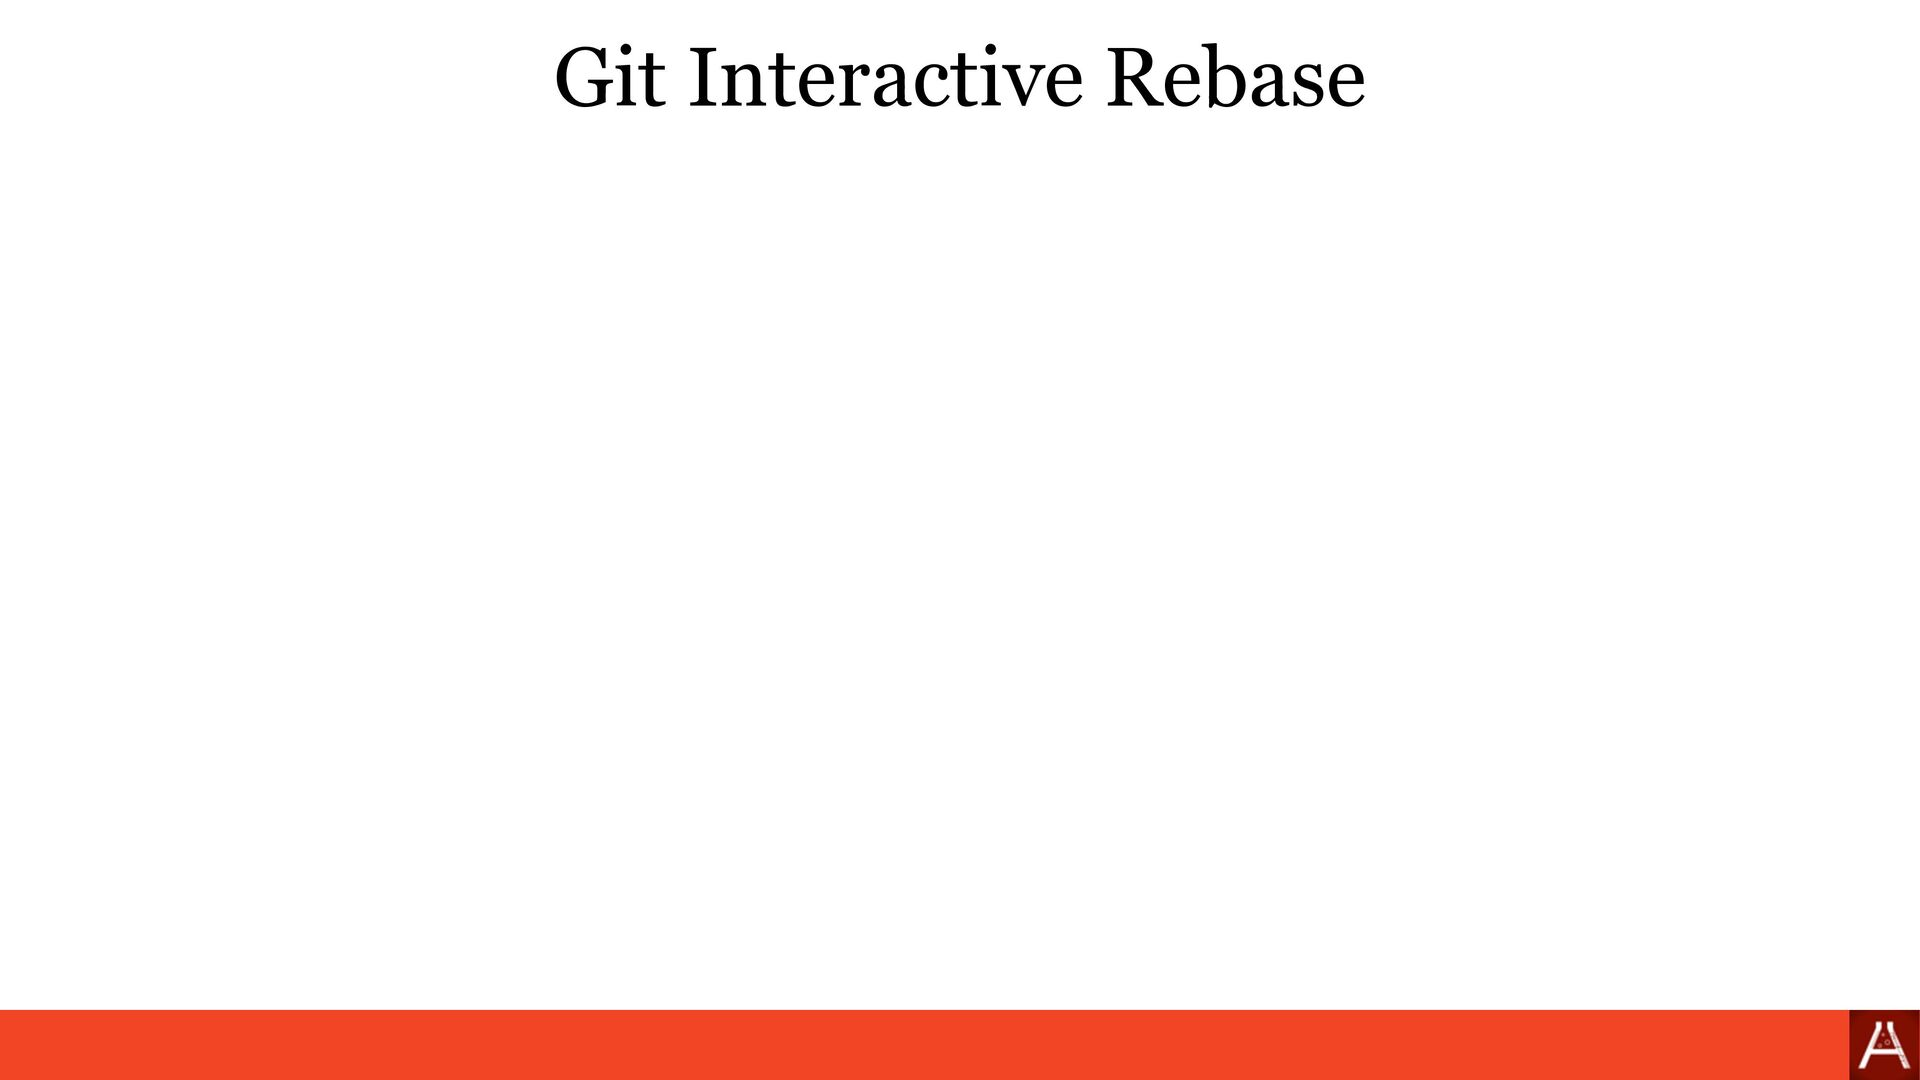 [push]   useForceIfIncludes = true Git Configur...